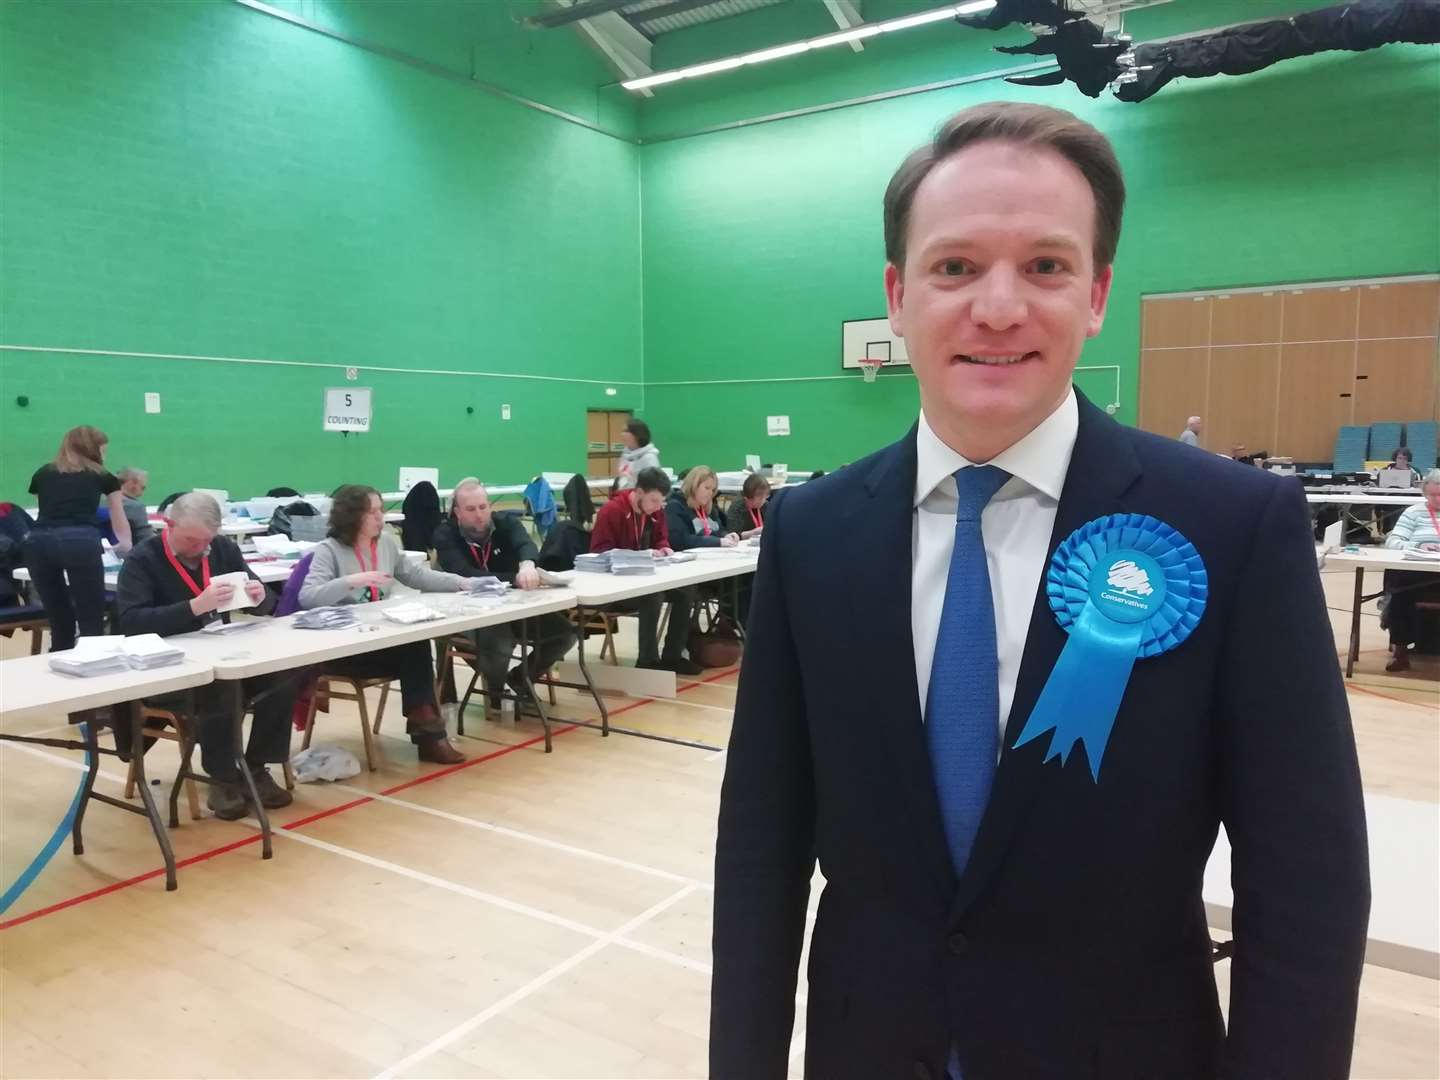 Gareth Davies celebrates winning the Grantham and Stamford constituency